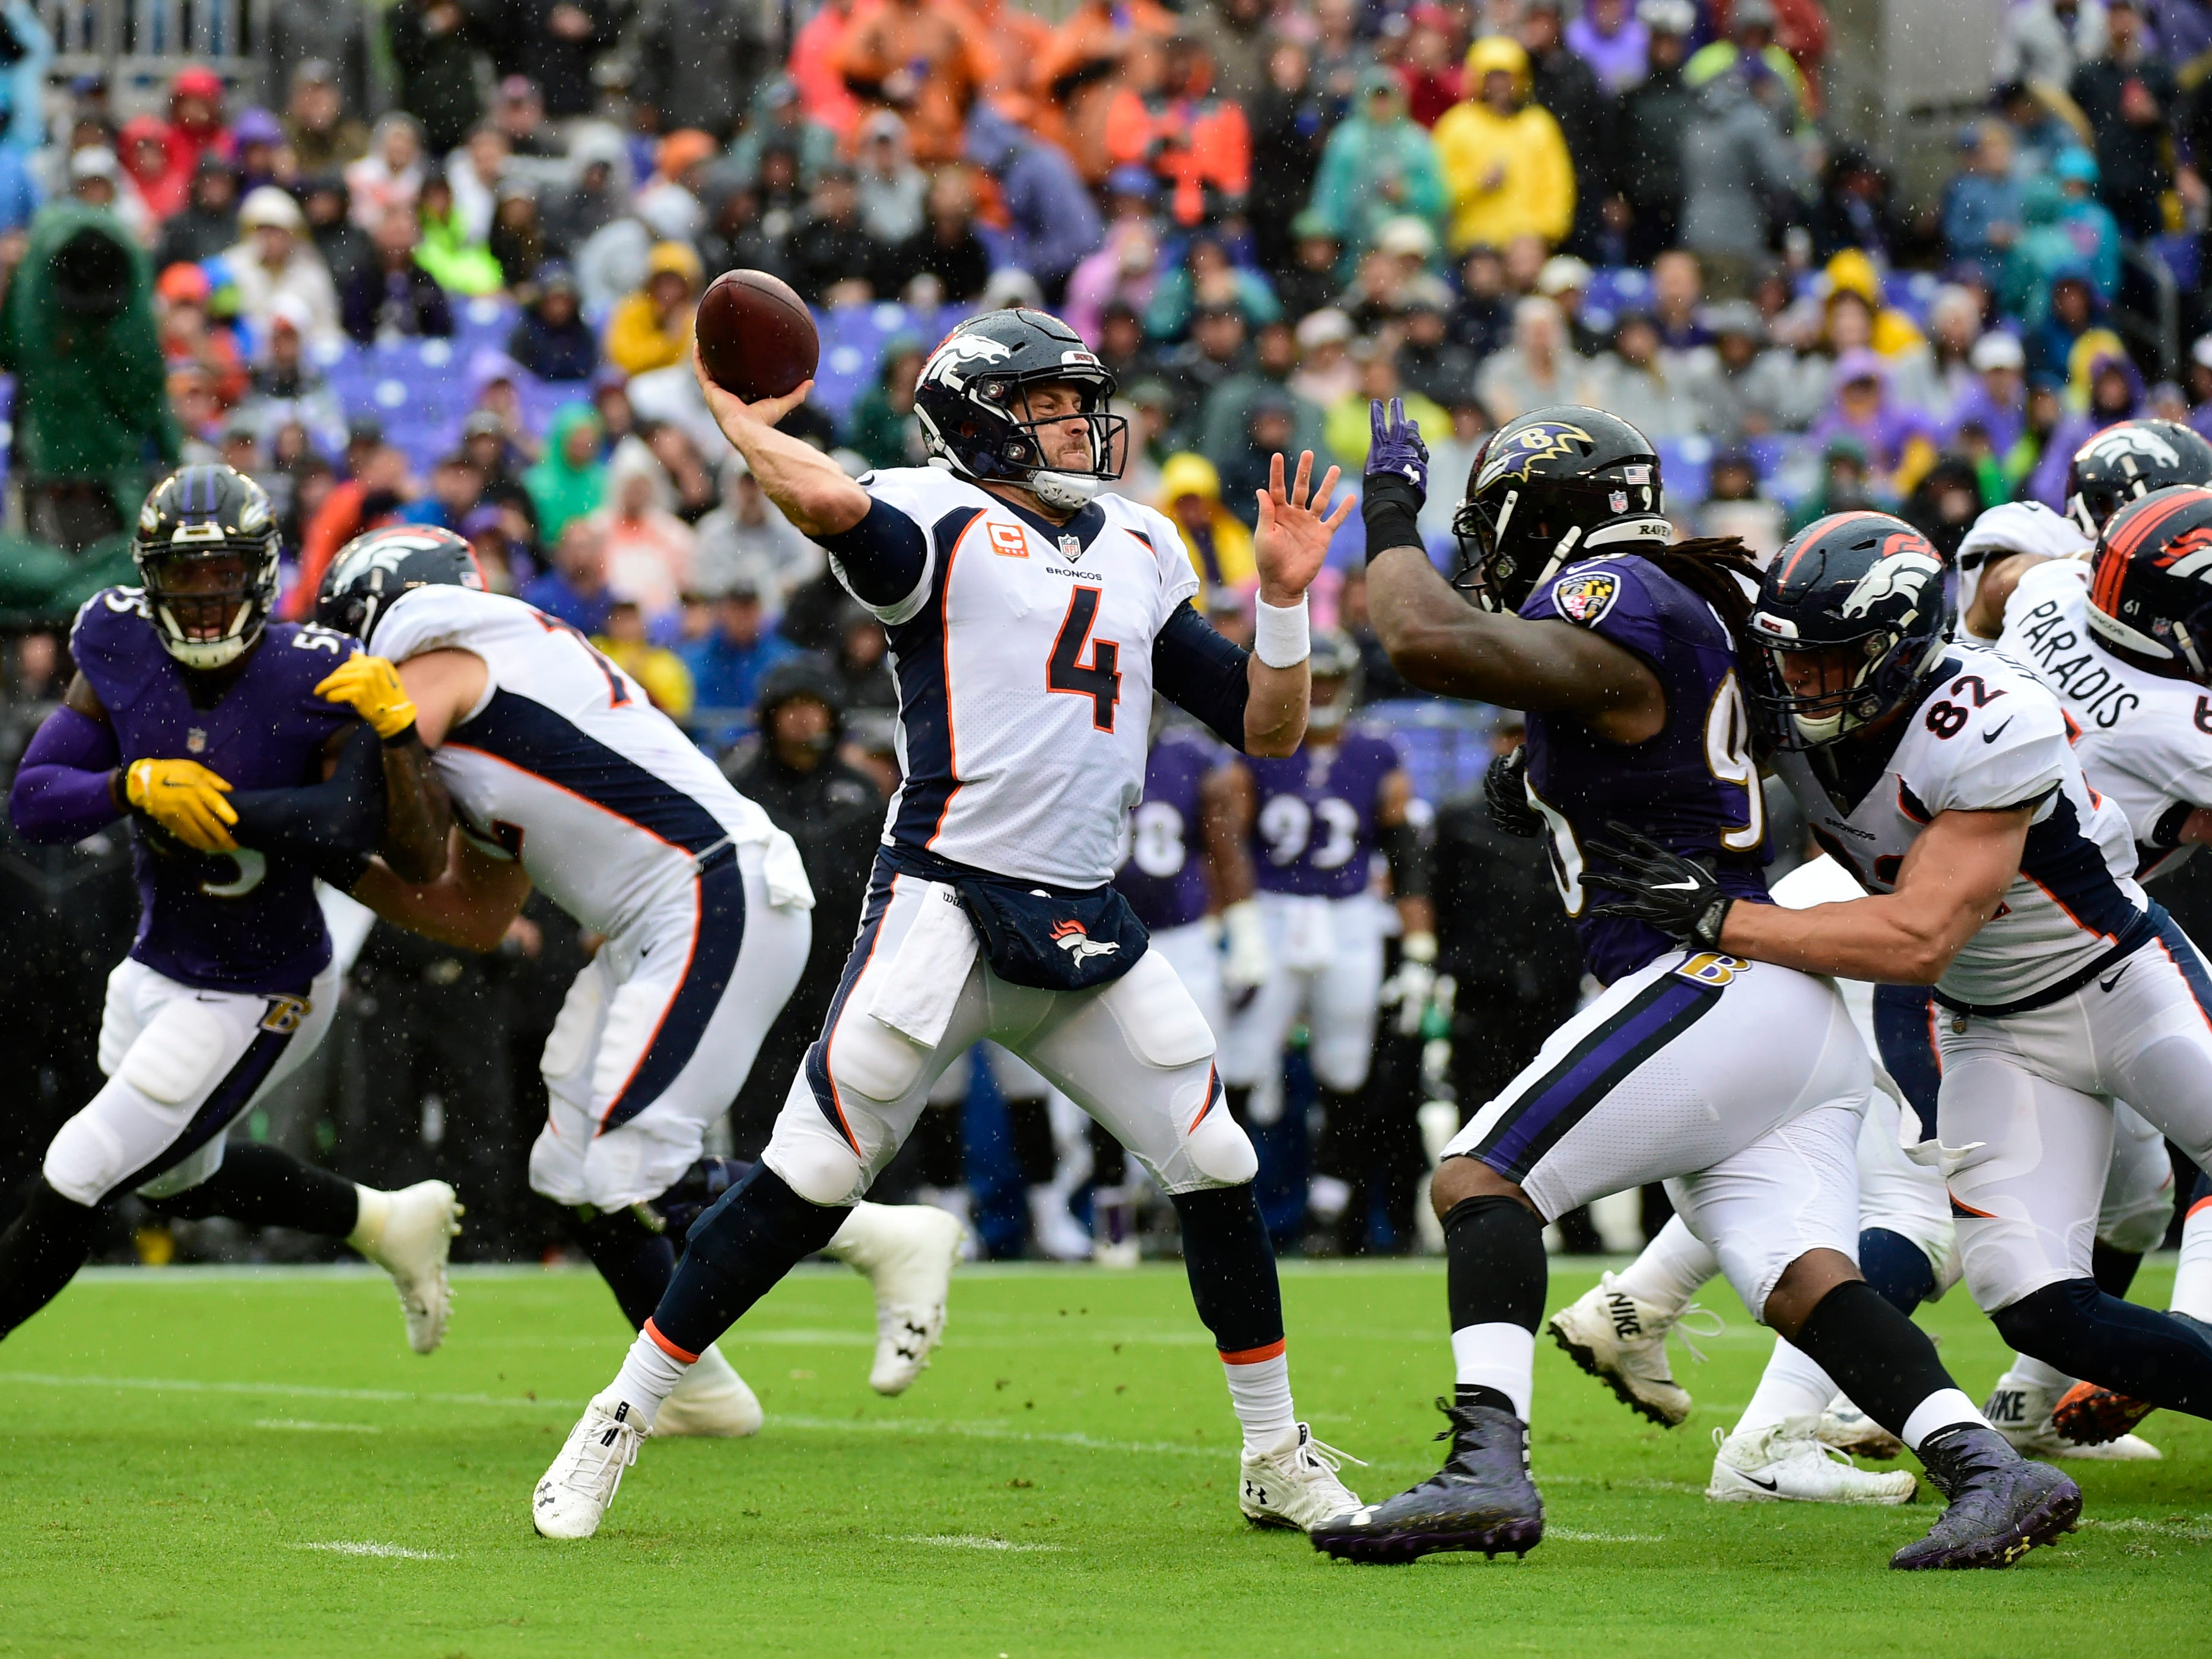 21. Broncos (14): Case Keenum among five QBs on pace to lead league with 27 INTs, though he's lowest rated (71.6), which would be worst of checkered career.